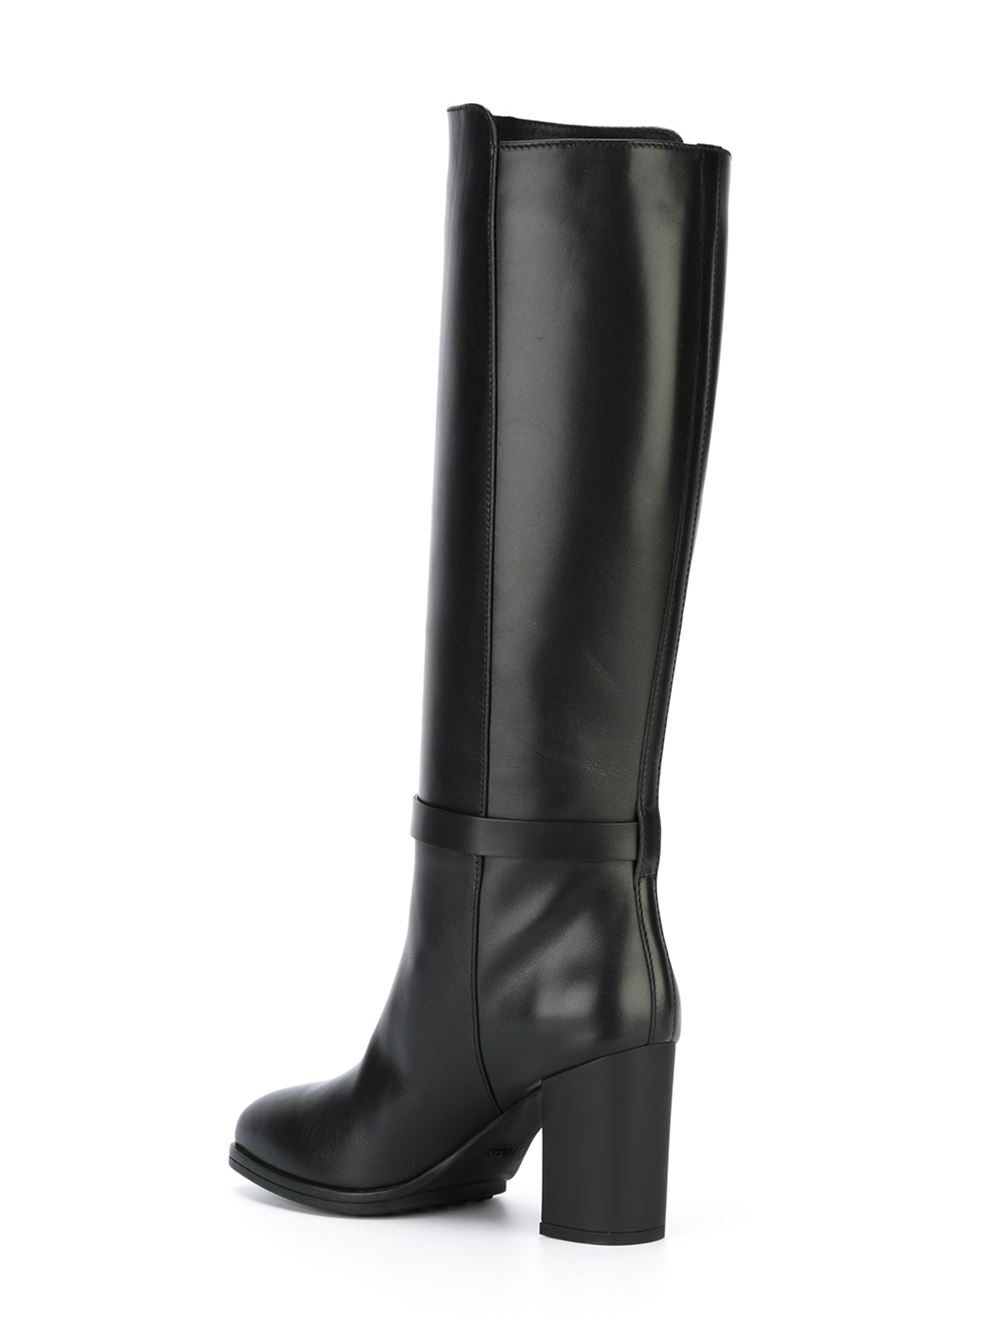 Tod's Leather Mid-Calf Boots in Black